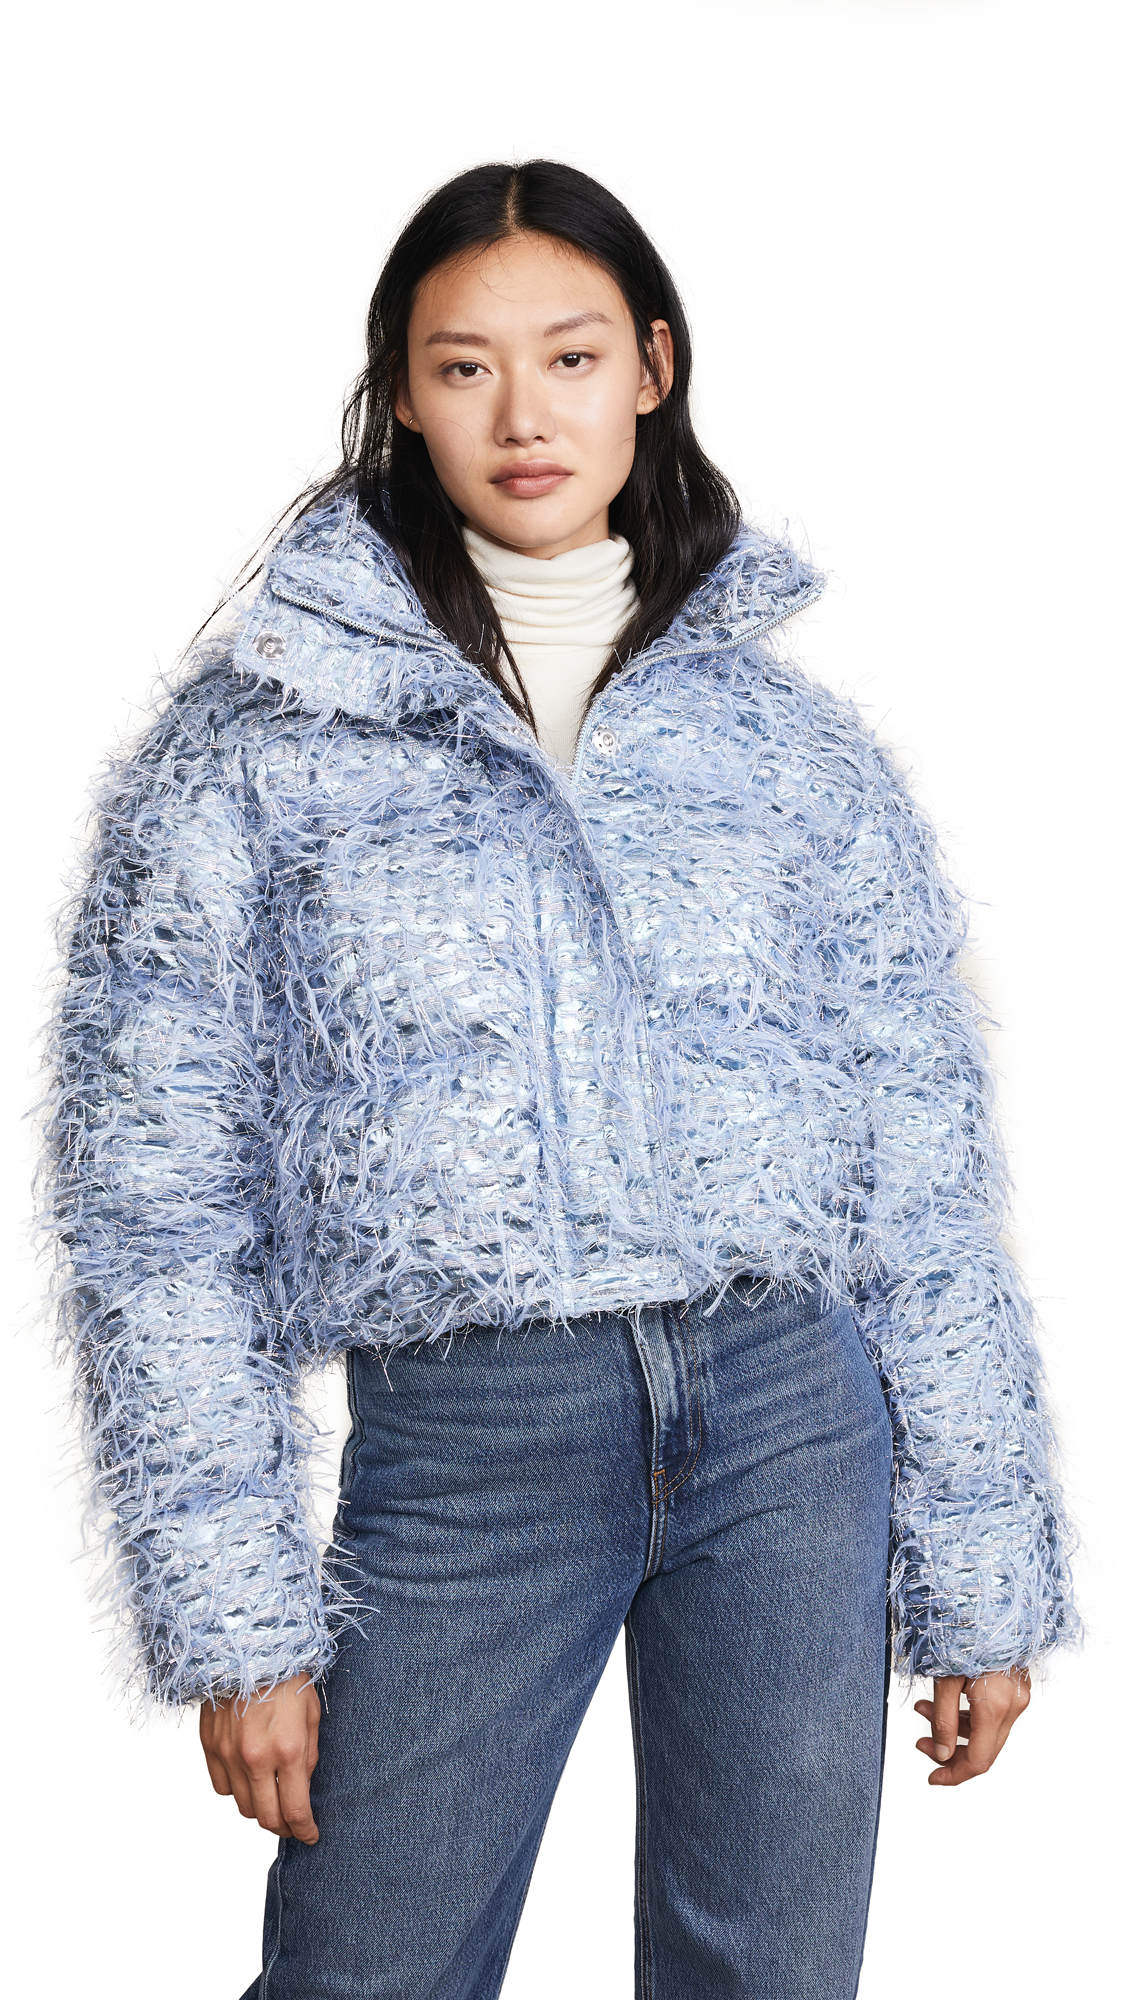 JOURDEN Kira Confetti Puffer Jacket in Blue